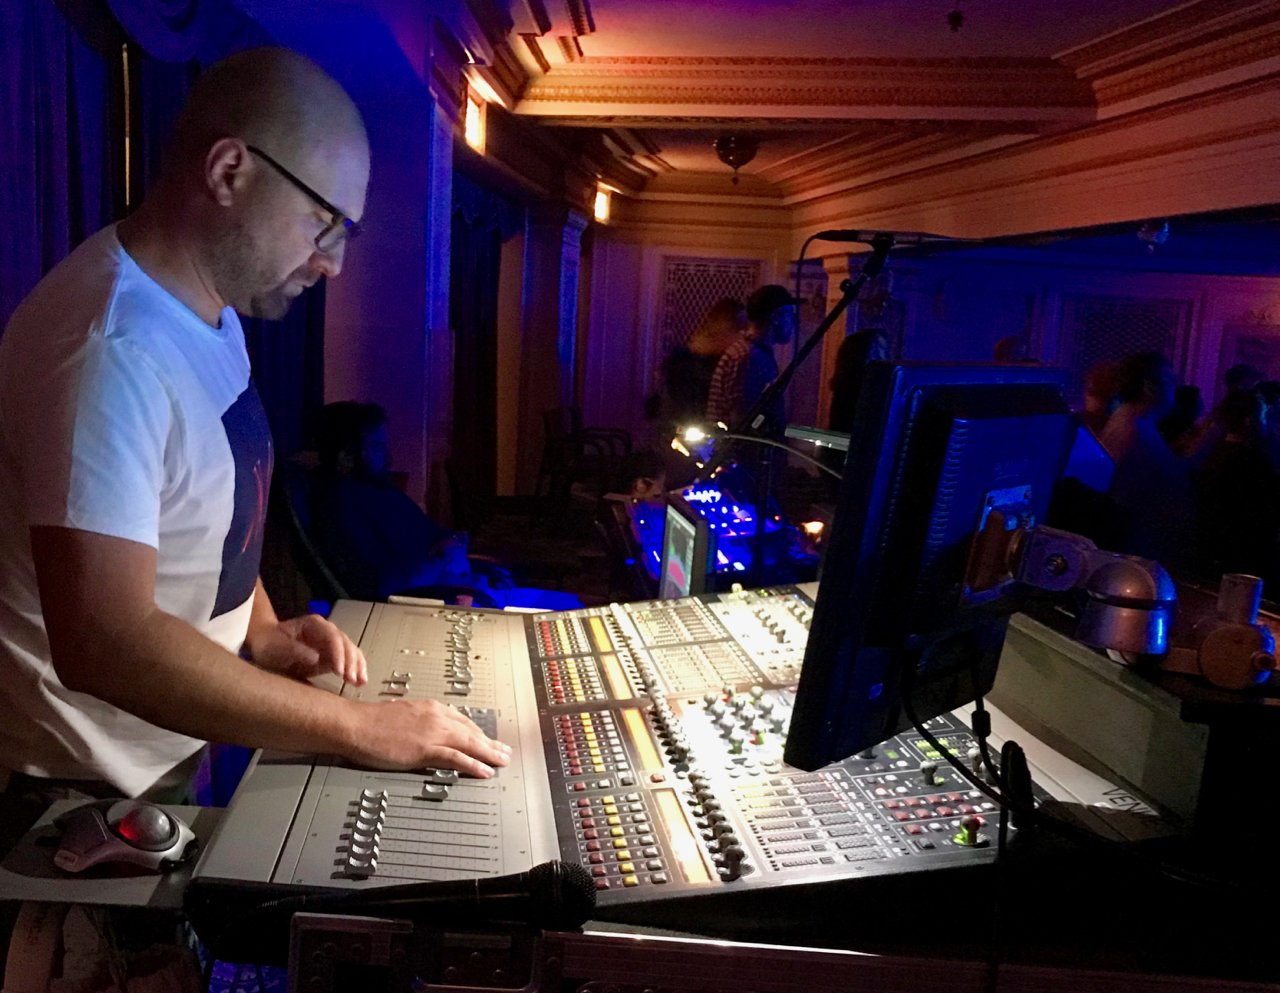 sound-design-live-touring-sound-engineers-getting-paid-less-dave-swallow-erasure-mixing